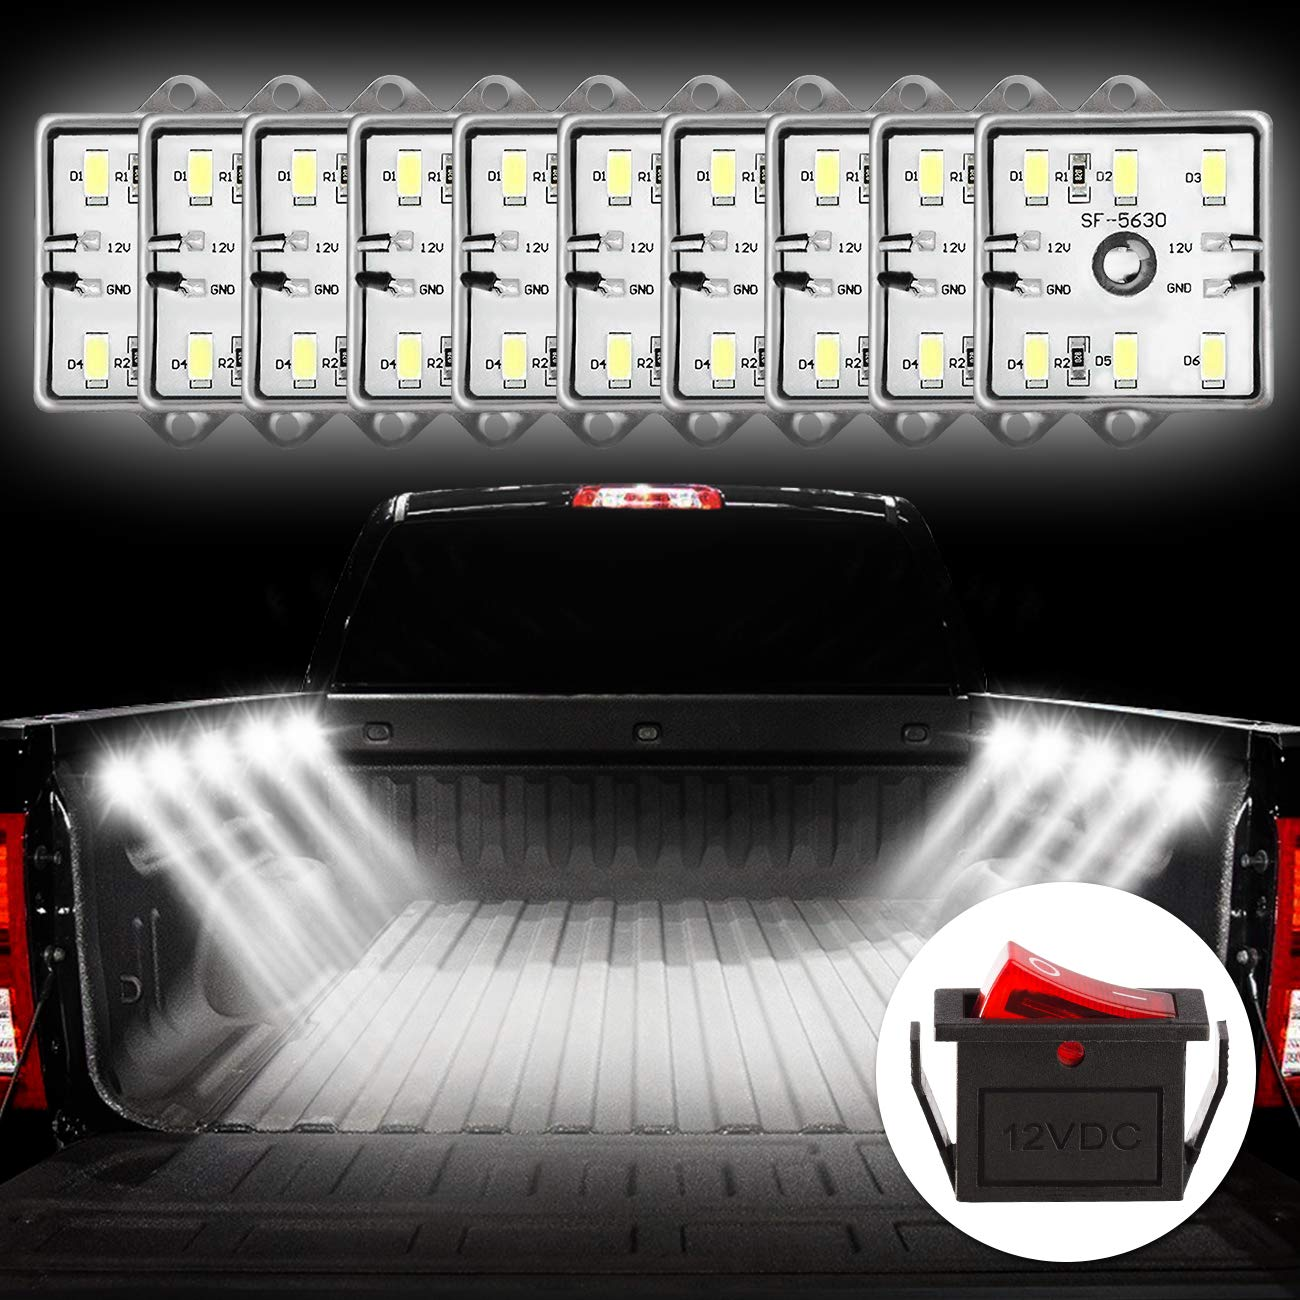 Favoto Truck Bed Light Van Interior Light RV Interior Lights 5730 SMD Super Bright On/Off Switch Included IP67 Waterproof LED Ceiling Lights for Van RV Boats Caravans Trailers (8 Modules) FTCA-48Led-Light